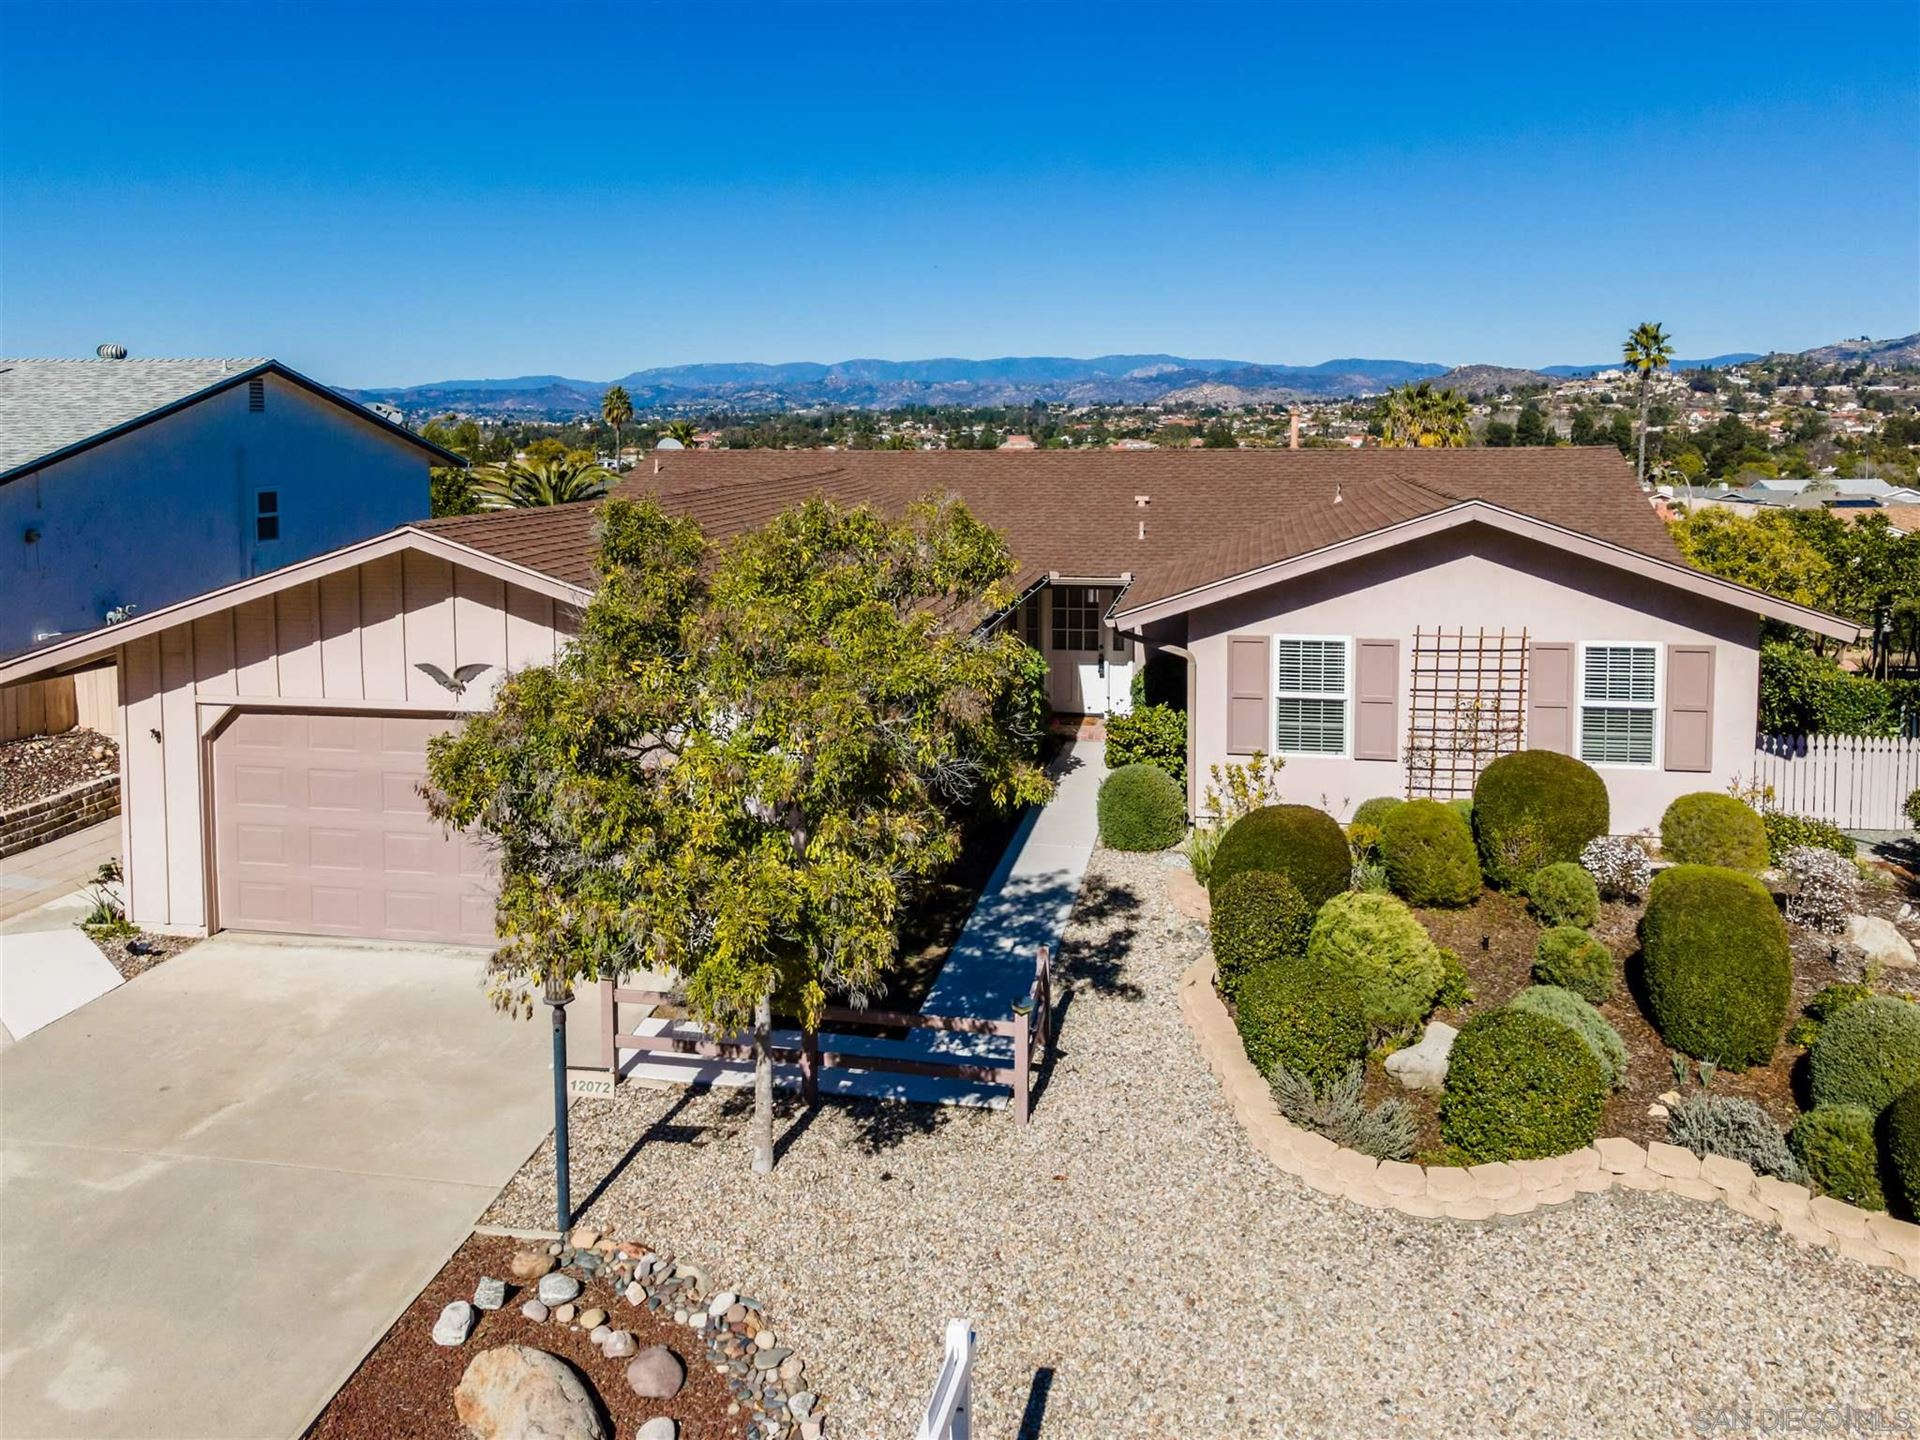 Photo for 12072 Lomica Dr, San Diego, CA 92128 (MLS # 210004690)